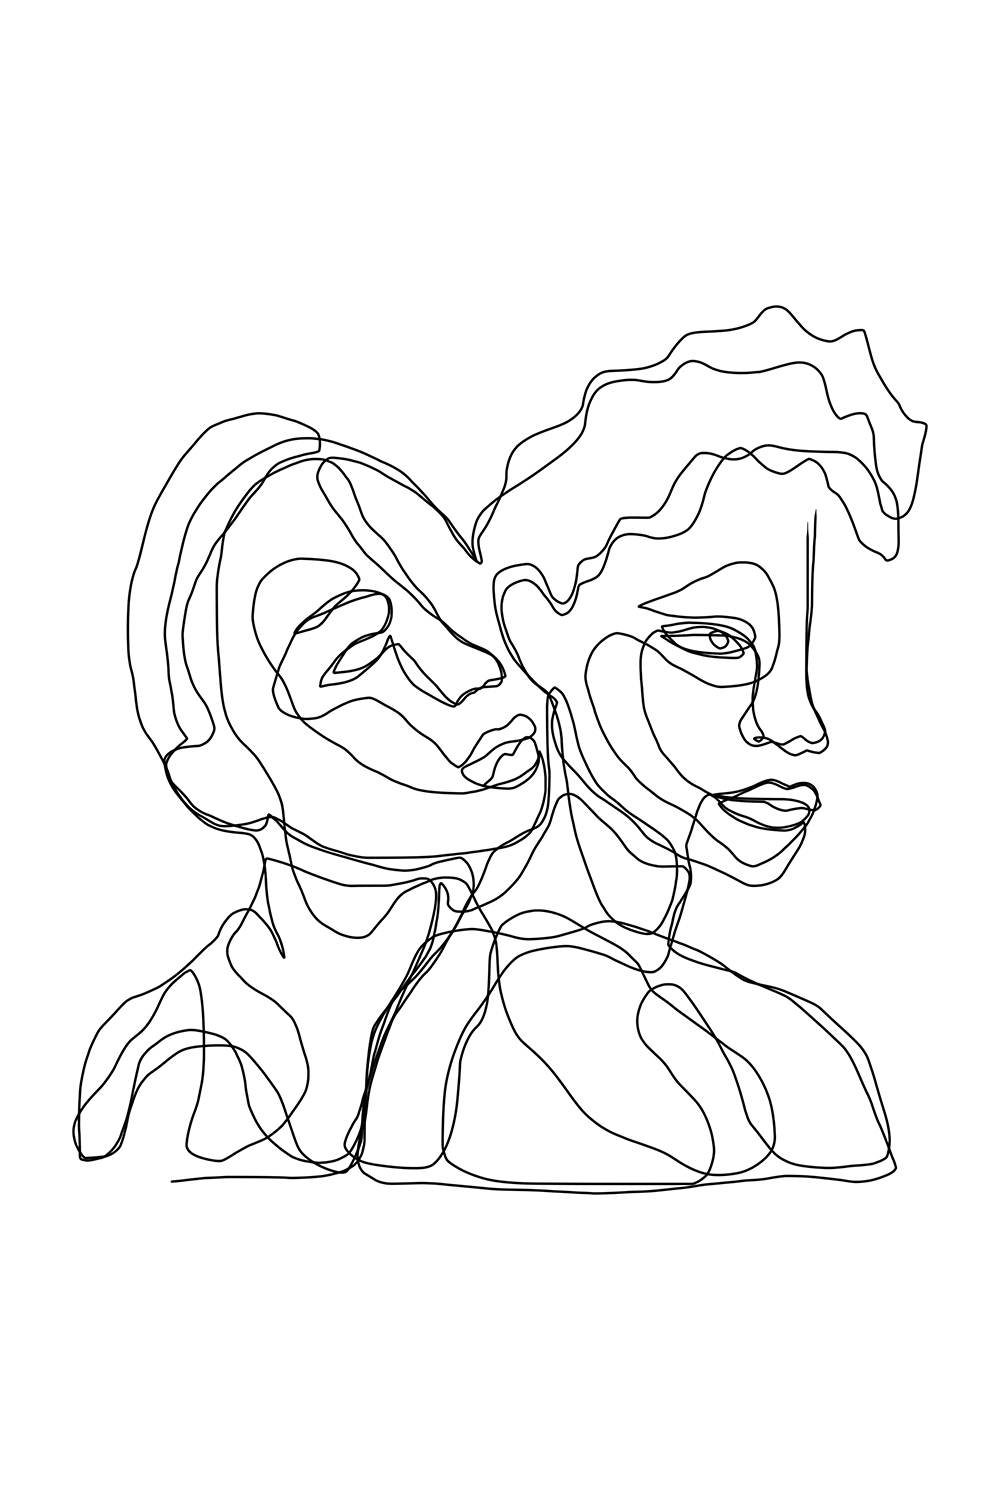 Minimalist line illustration of two people with one person leaning on the other